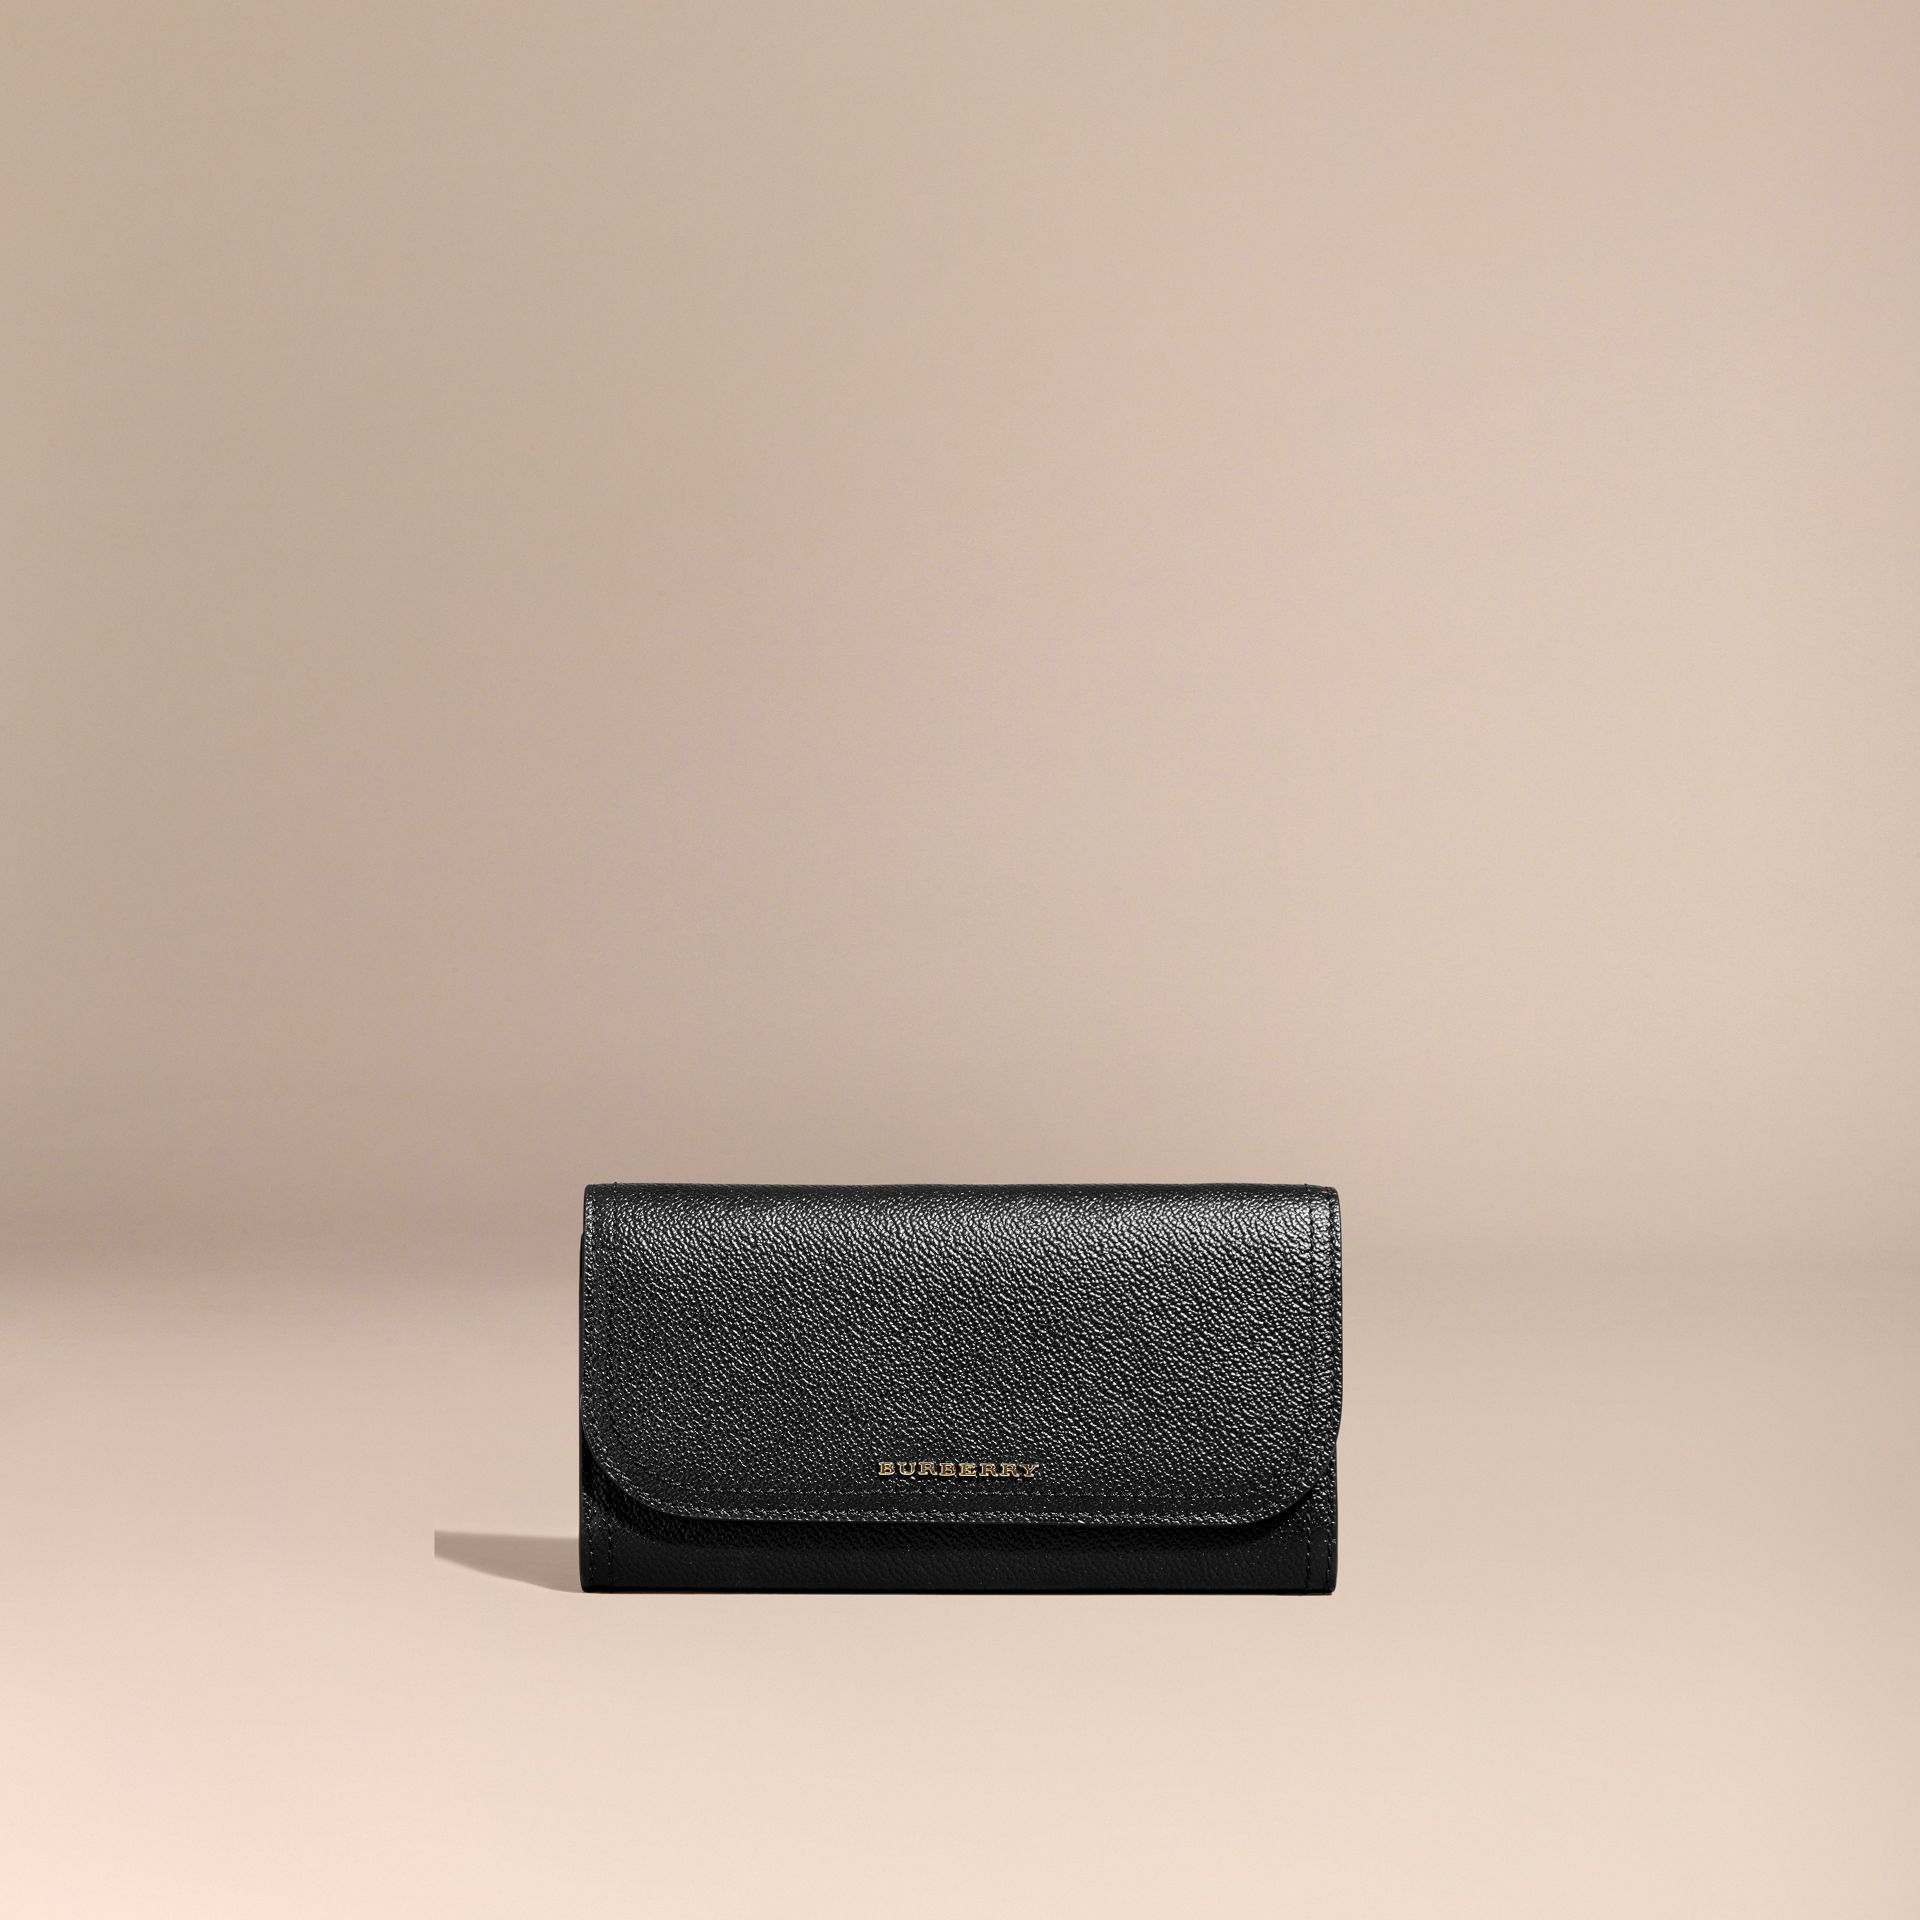 Grainy Leather Slim Continental Wallet in Black - Women | Burberry Australia - gallery image 7